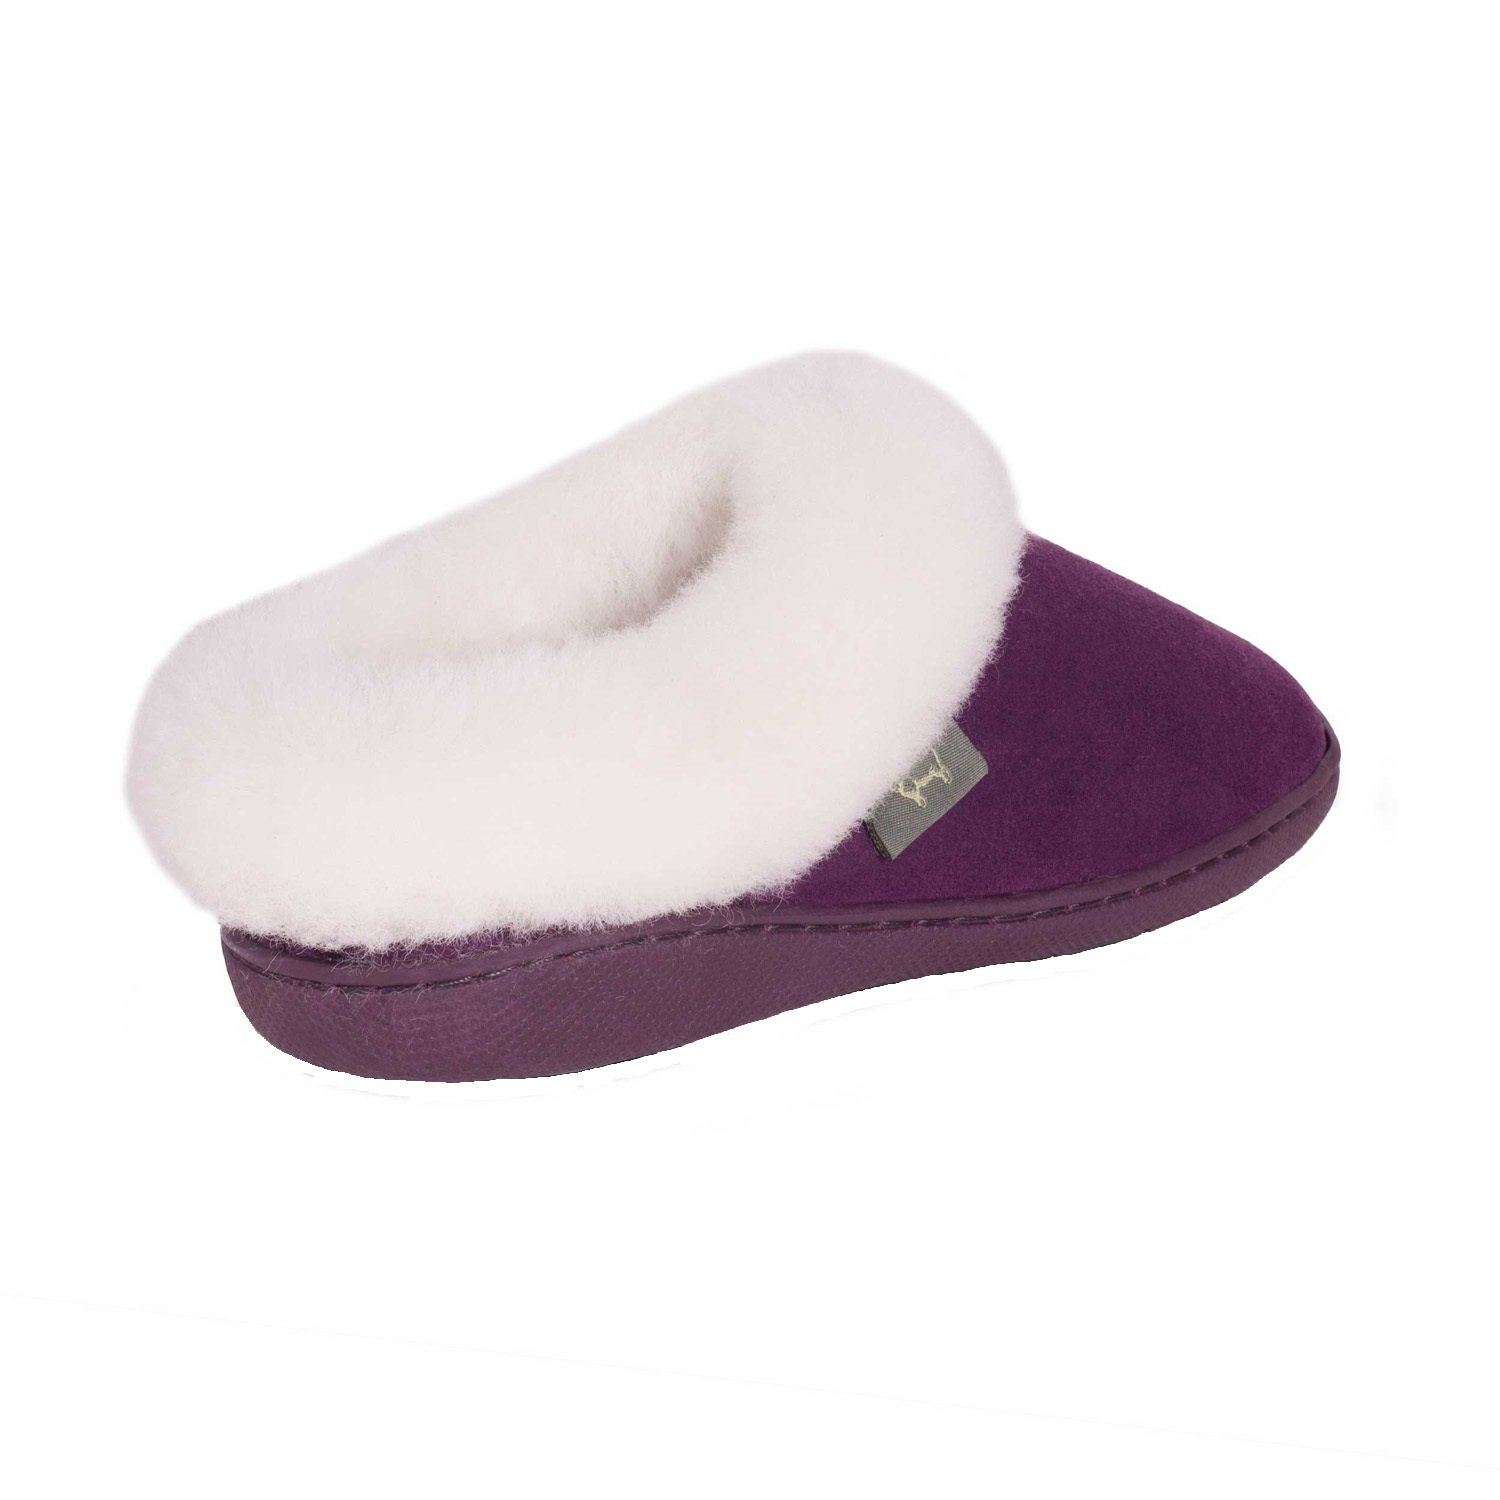 Cloud Nine Sheepskin Women's Sunrise Clog Slipper B01LSJQQJ0 10 B(M) US|Berry